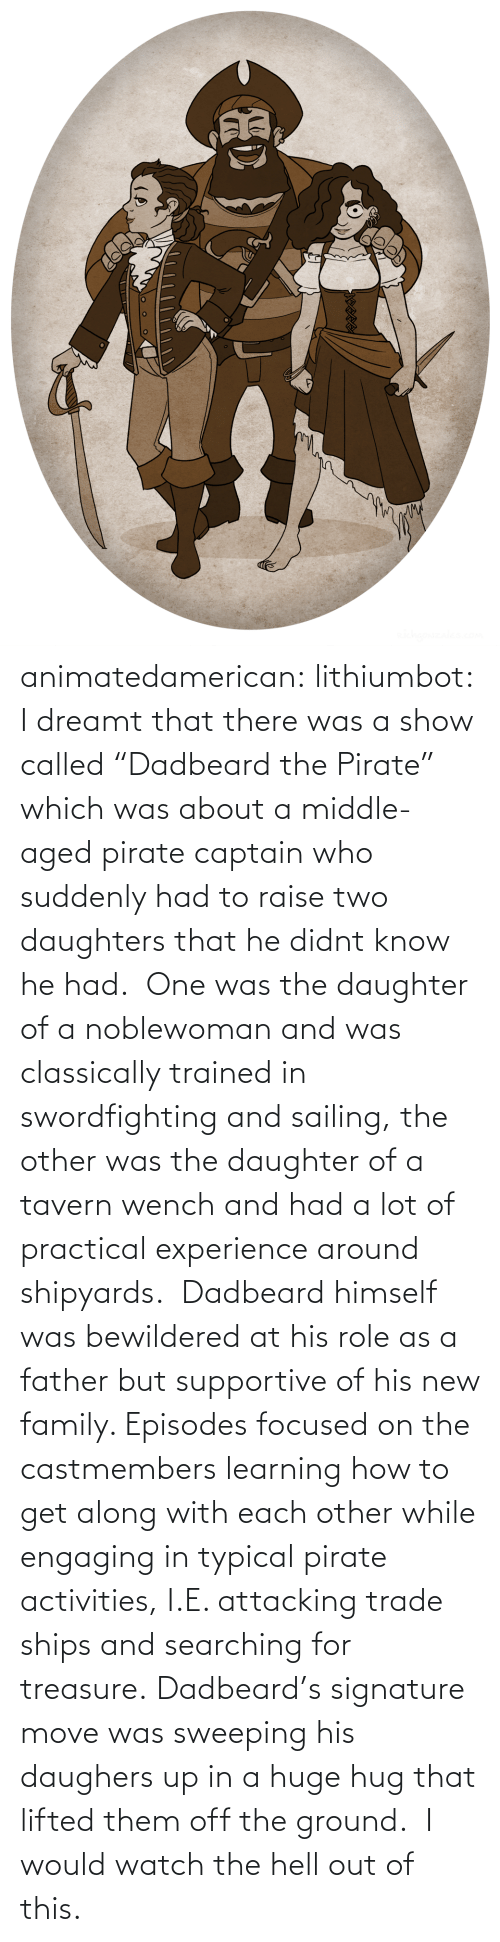 """Family, Tumblr, and Blog: animatedamerican: lithiumbot:  I dreamt that there was a show called""""Dadbeard the Pirate"""" which was about a middle-aged pirate captain who suddenly had to raise two daughters that he didnt know he had. One was the daughter of a noblewoman and was classically trained in swordfighting and sailing, the other was the daughter of a tavern wench and had a lot of practical experience around shipyards. Dadbeard himself was bewildered at his role as a father but supportive of his new family. Episodes focused on the castmembers learning how to get along with each other while engaging in typical pirate activities, I.E. attacking trade ships and searching for treasure. Dadbeard's signature move was sweeping his daughers up in a huge hug that lifted them off the ground.  I would watch the hell out of this."""